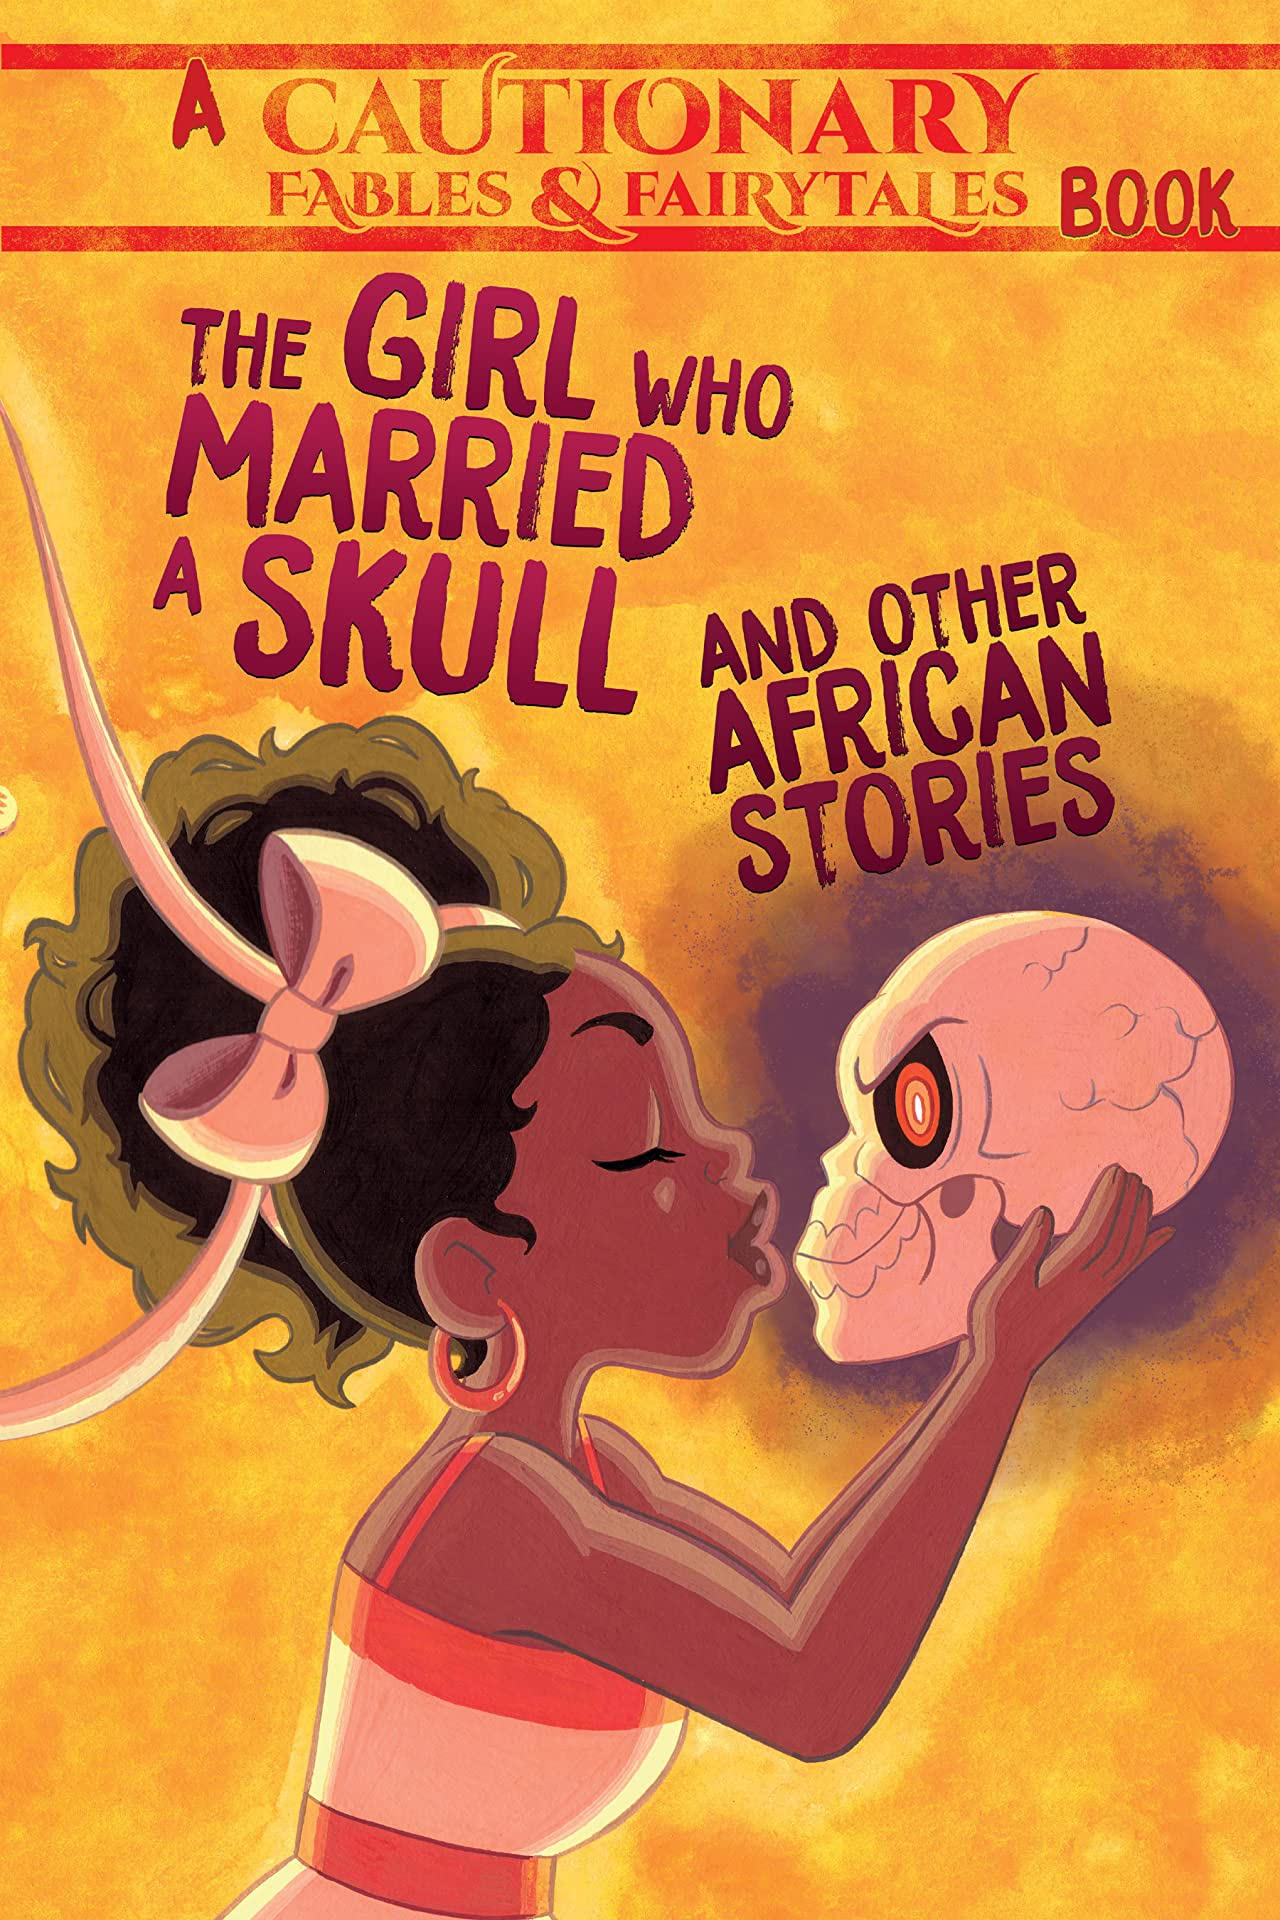 The Girl Who Married a Skull and Other African Stories Vol. 1